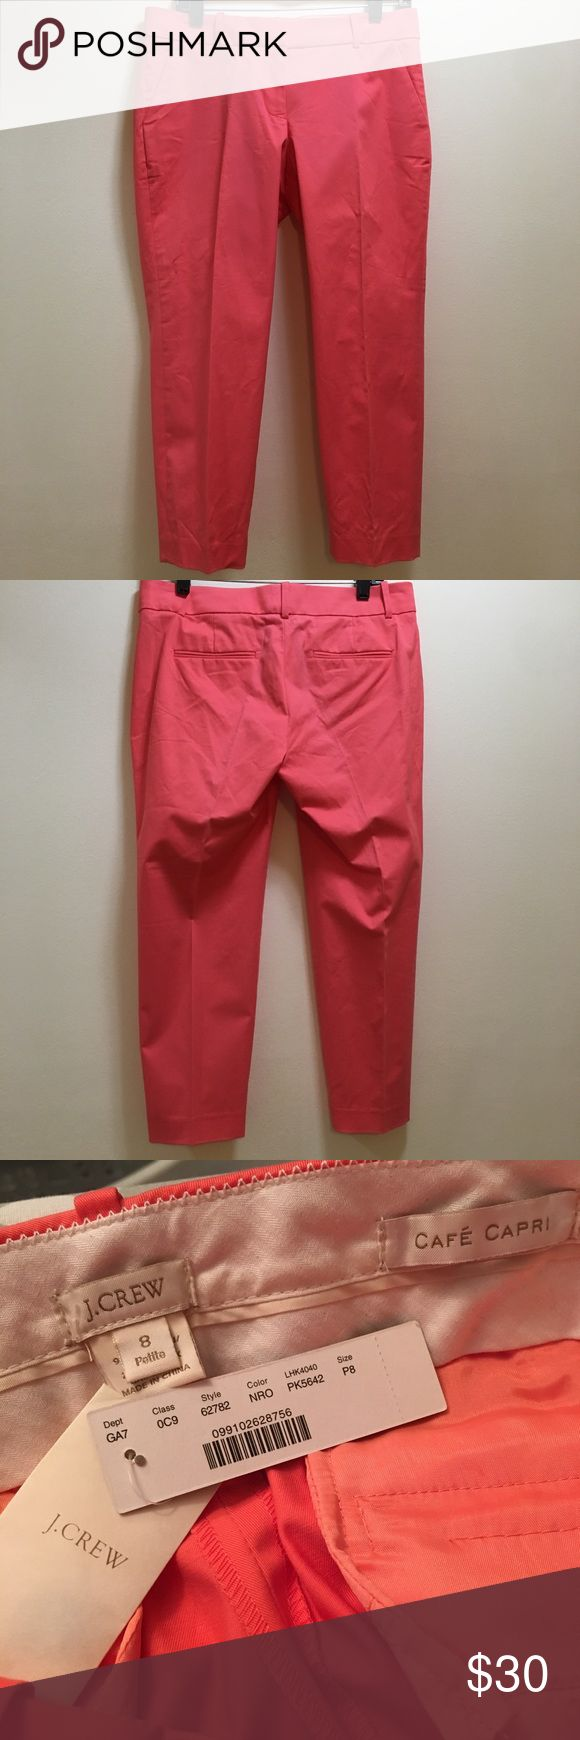 """Sz 8P J. Crew Cafe Capri - Coral New with tags Cafe Capri is the style Size 8 Petite Please see the photo of the back. There is a line down the back. I would assume it would wash out but I didn't want to wash them since they are new with tags. Plus, I'm not good at getting stuff off of clothes so I figured if you are - I didn't already damage it more with the dryer! Price reflects the unknown line (but again I'm sure it'll wash out) 16"""" waist laying flat 9"""" rise  Inseam 23.5"""" J. Crew Pants…"""